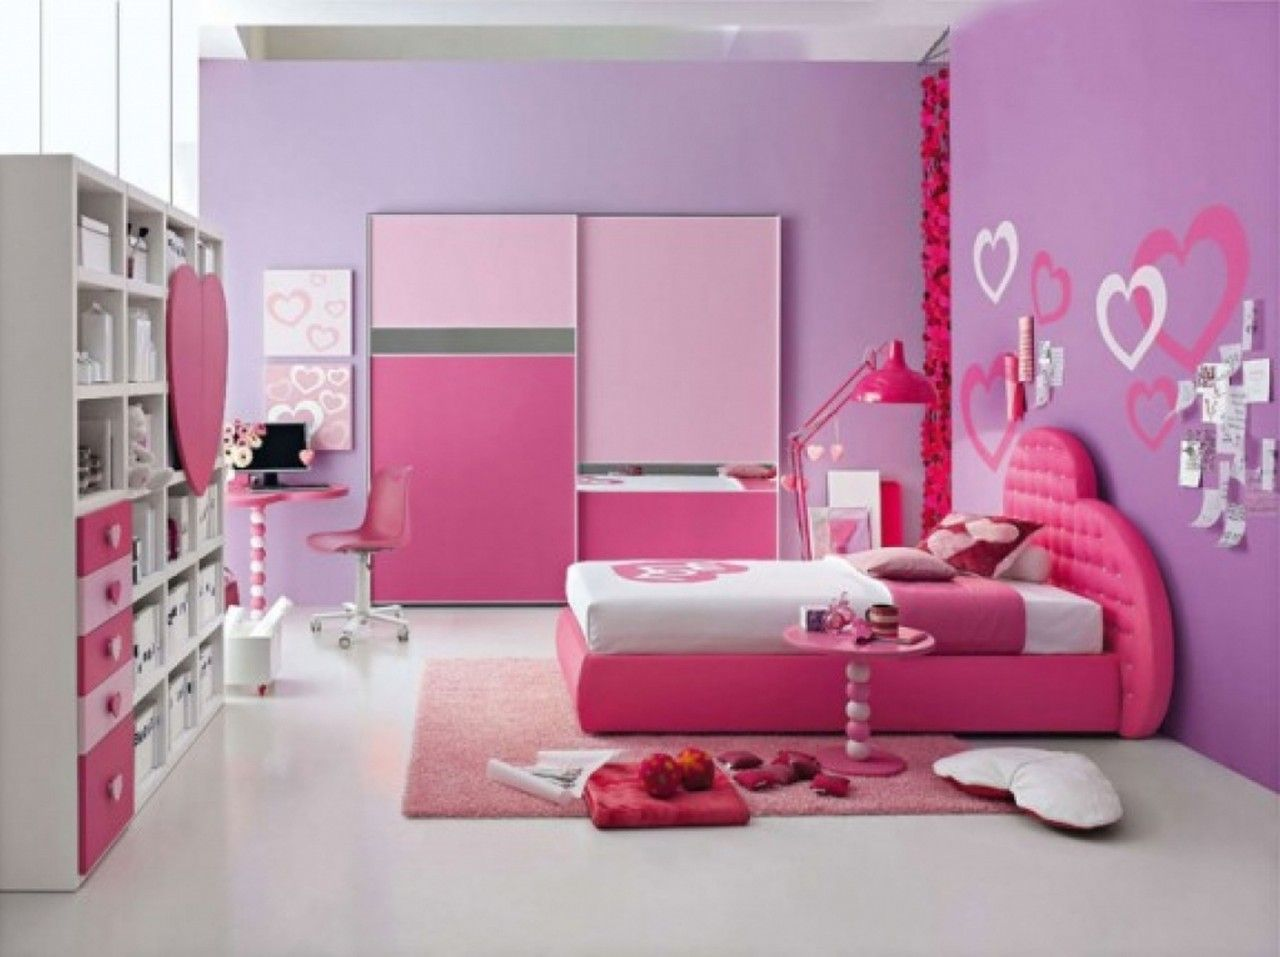 Bedroom design for girls purple - Ikea Teenage Girl Bedroom Ideas Cute Bedroom Ideas For Teenage Girls With Purple Wall And